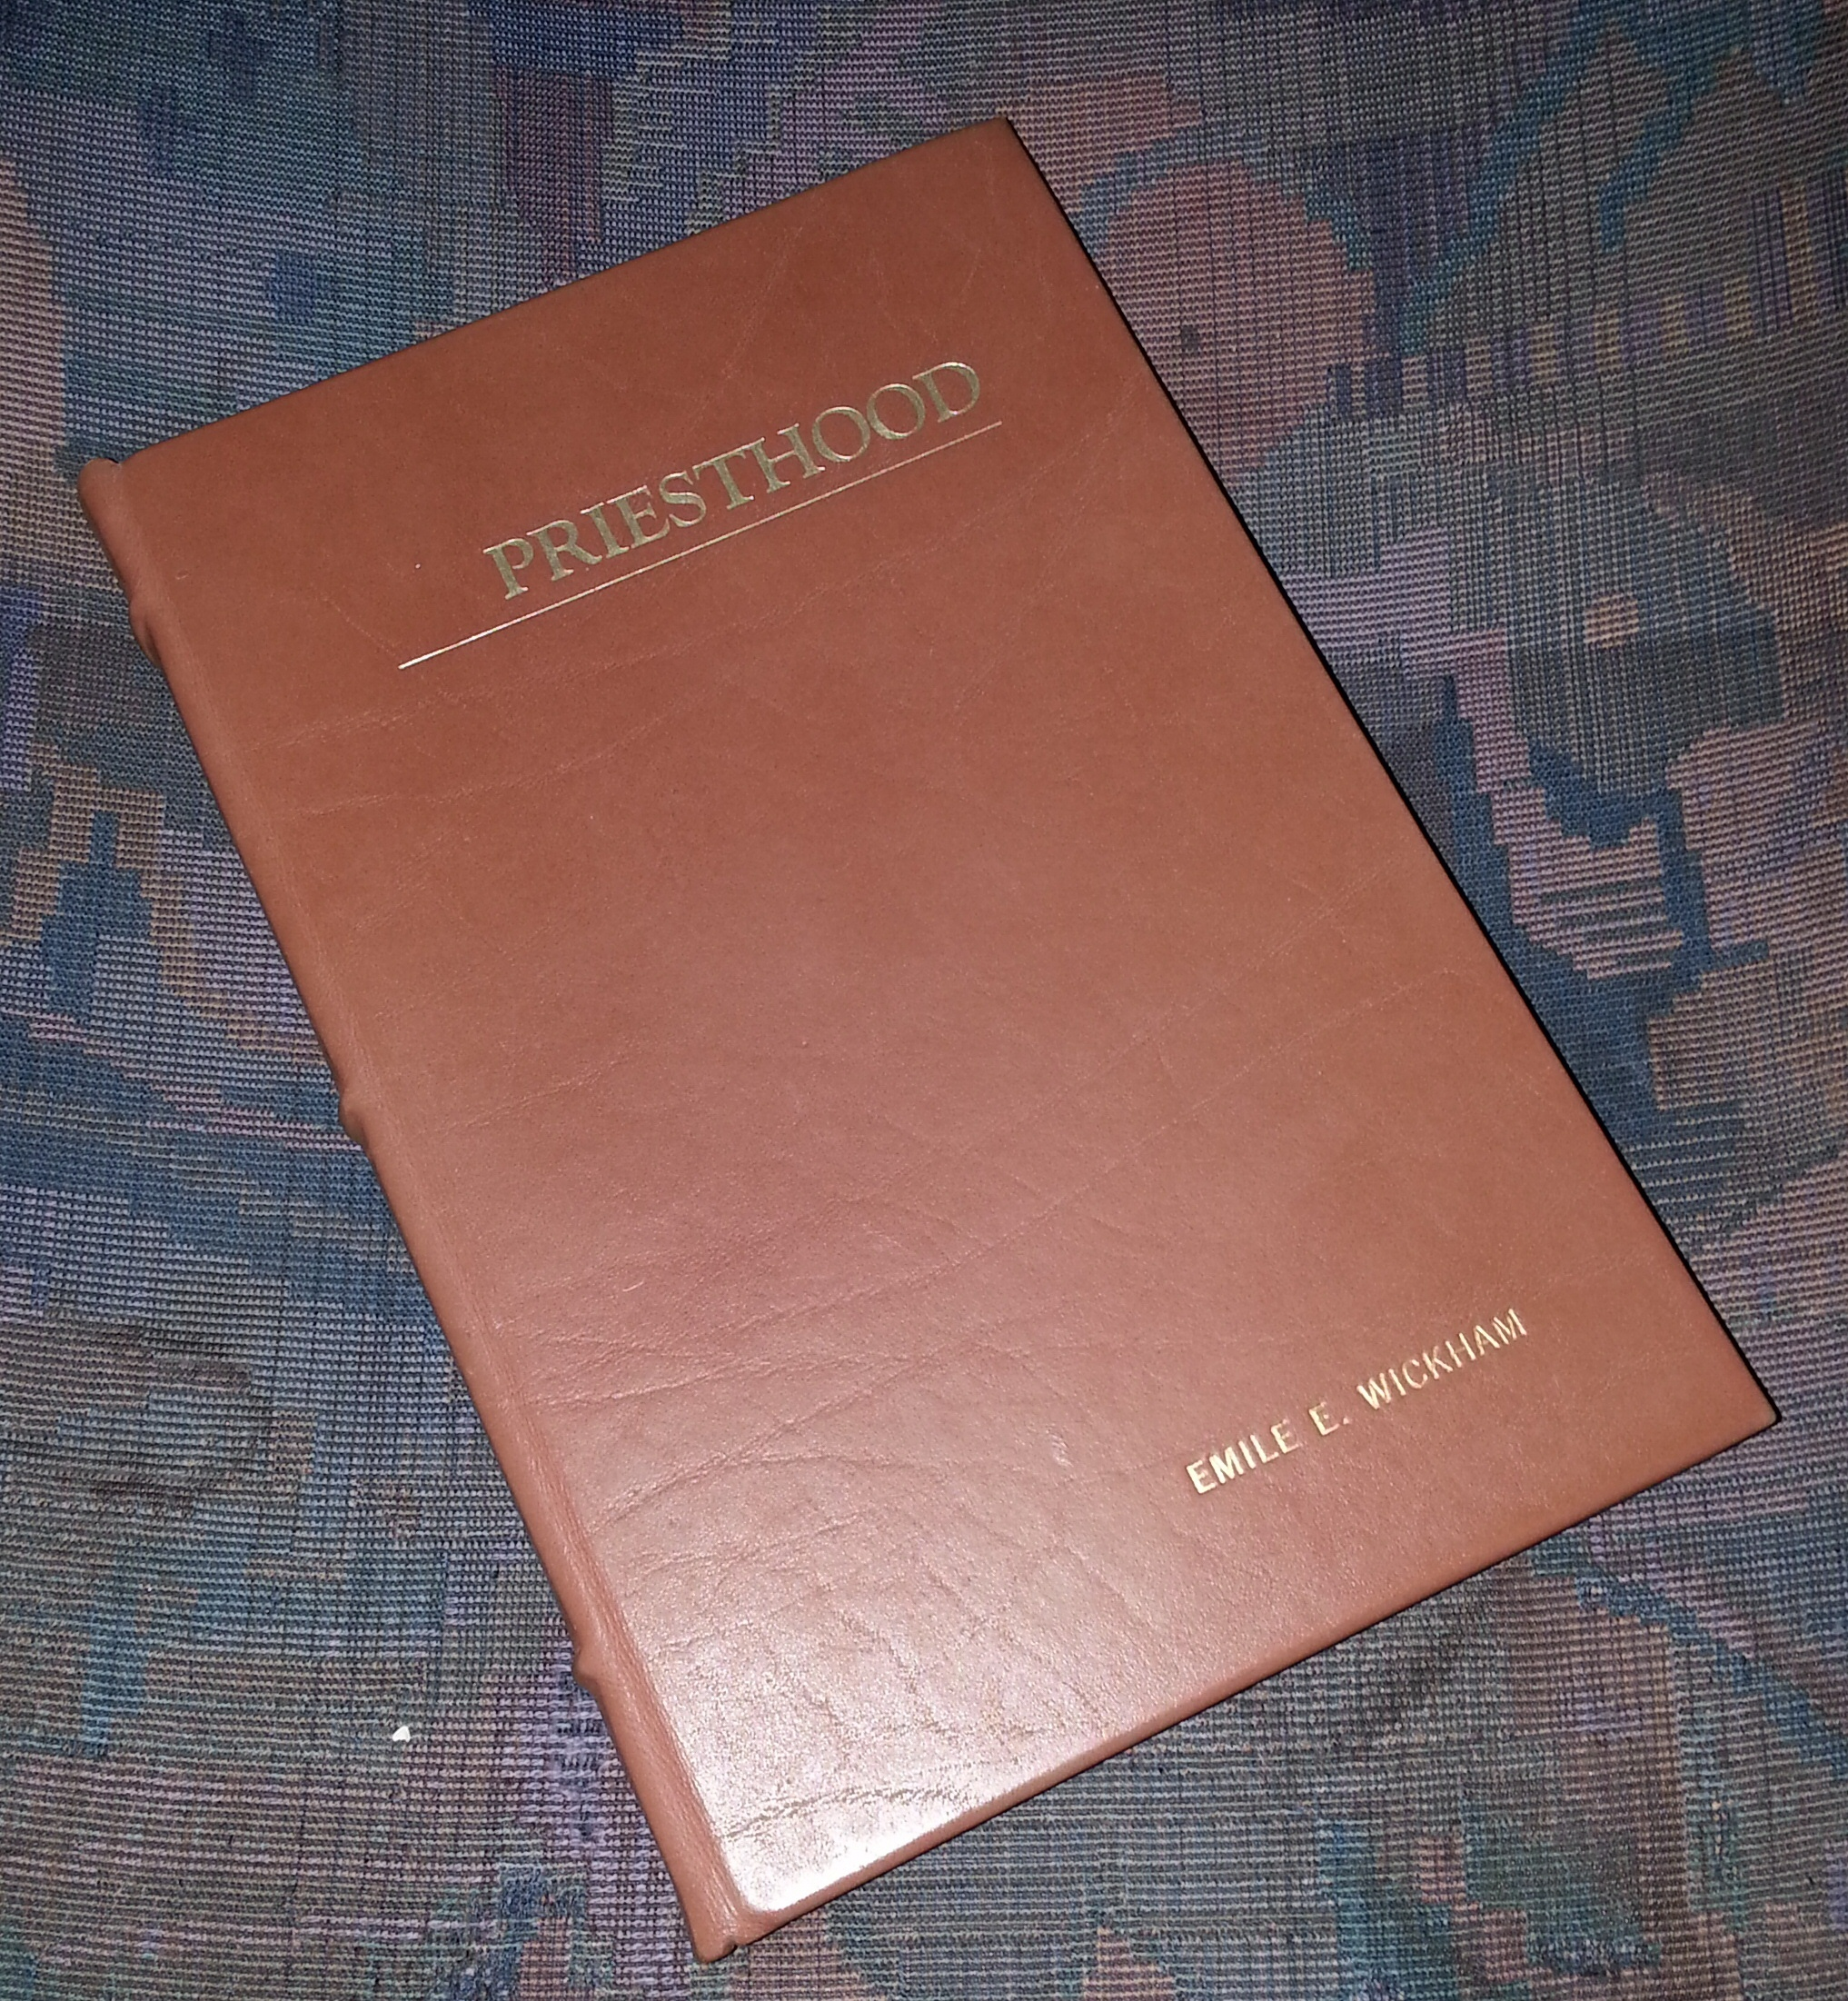 Image for Priesthood 1981 (Leather Bound) -  A collection of talks, sermons, and articles.